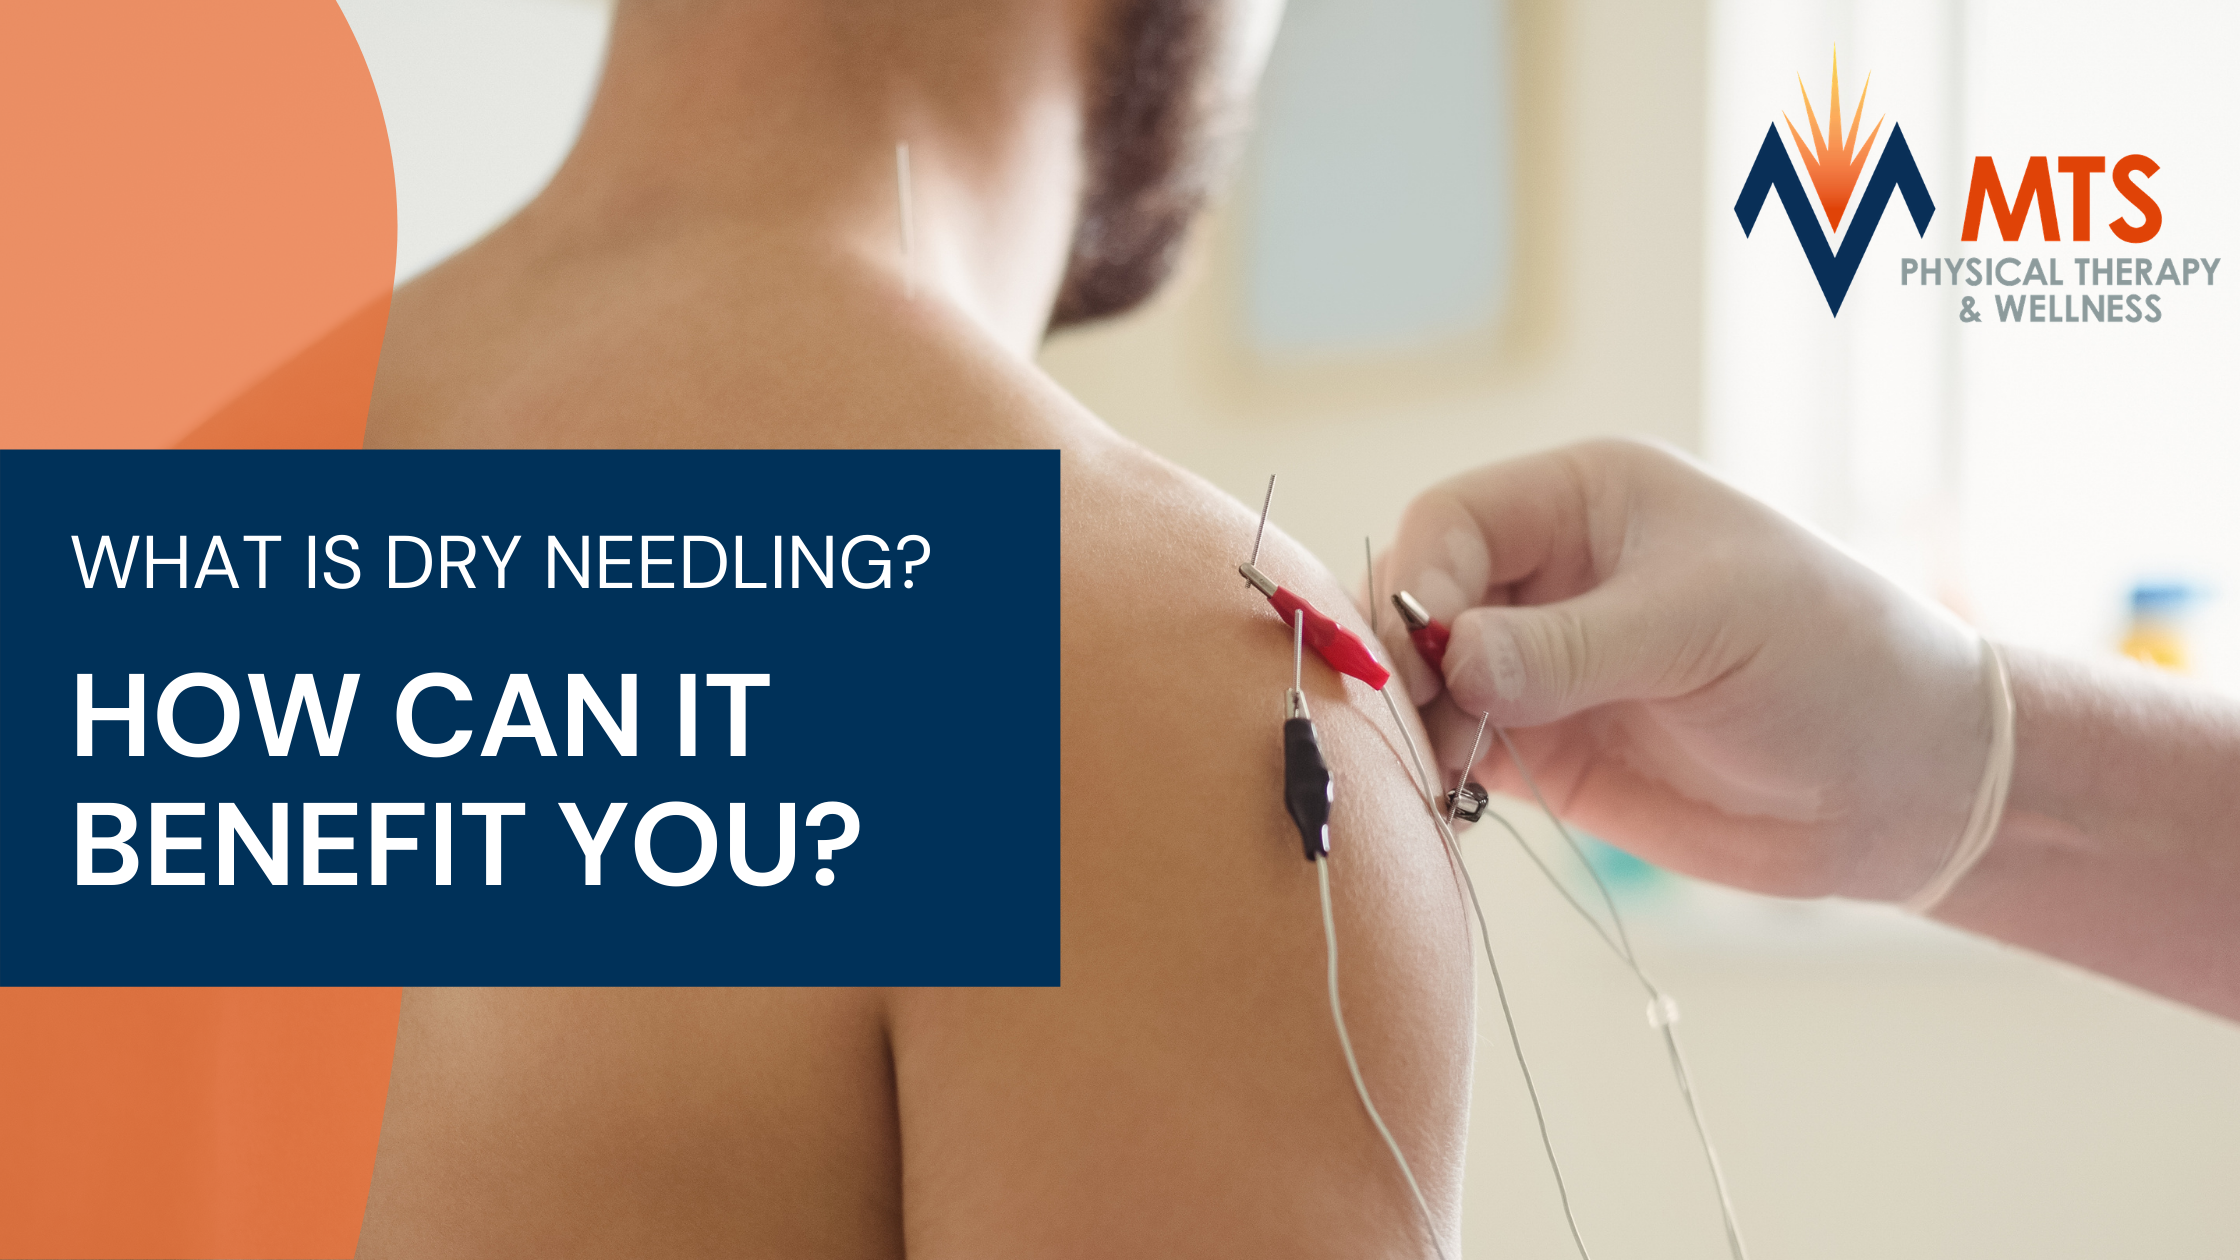 What is Dry Needling & How Can It Benefit You?